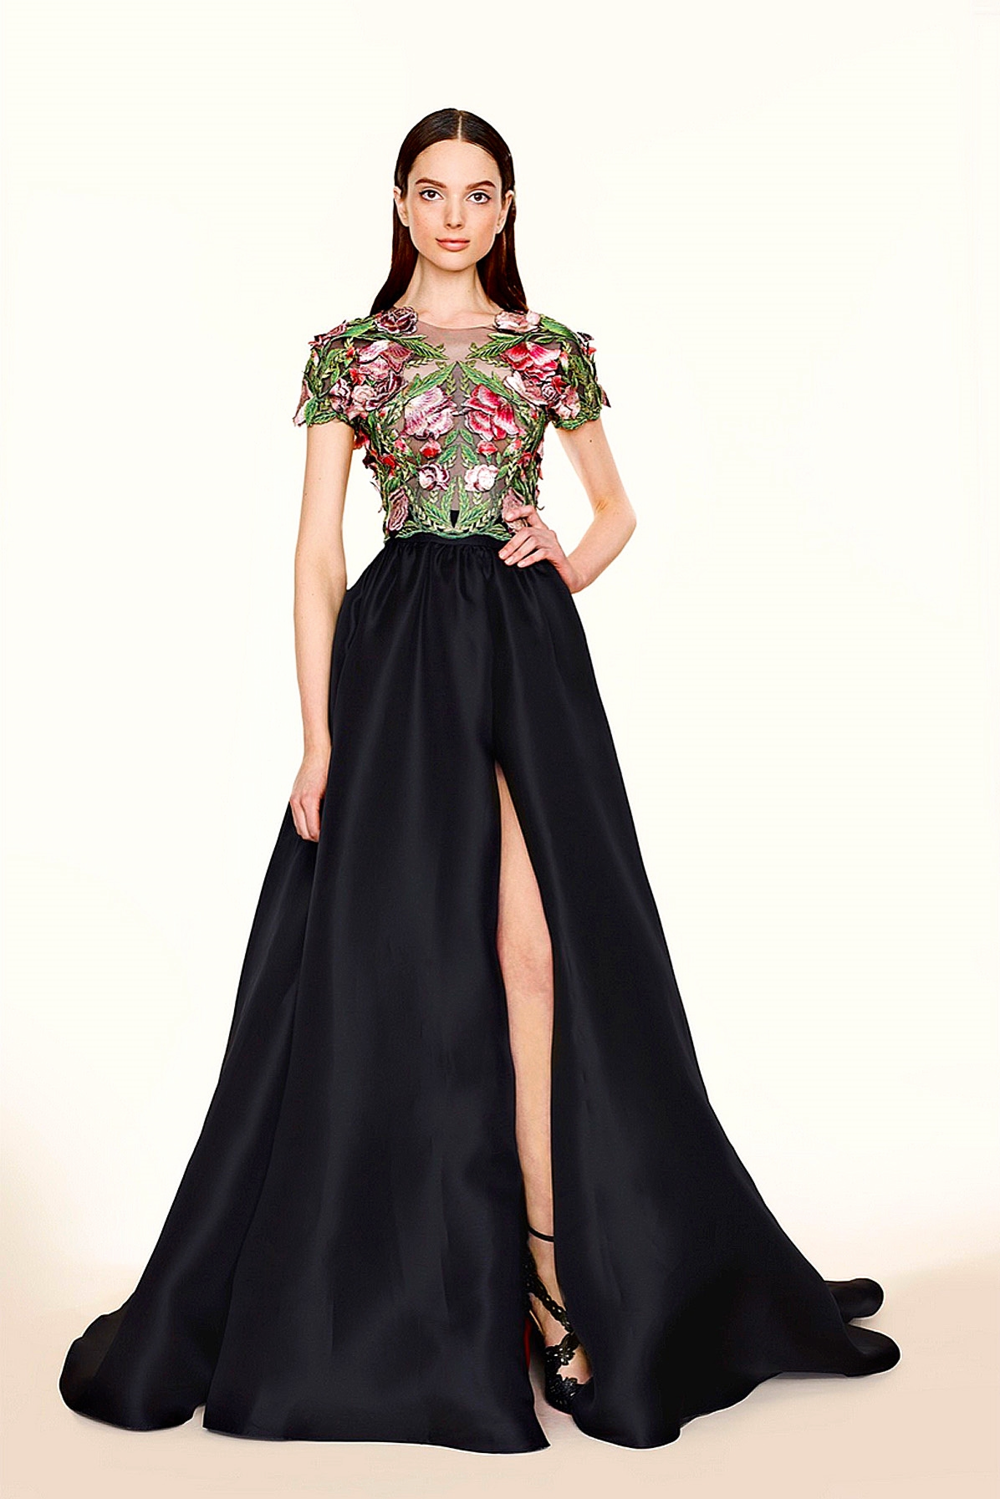 ea55f0ebaf For their sister Marchesa Notte line, Georgina Chapman and Keren Craig took  the same inspiration cues from their Marchesa resort collection — Islamic  ...